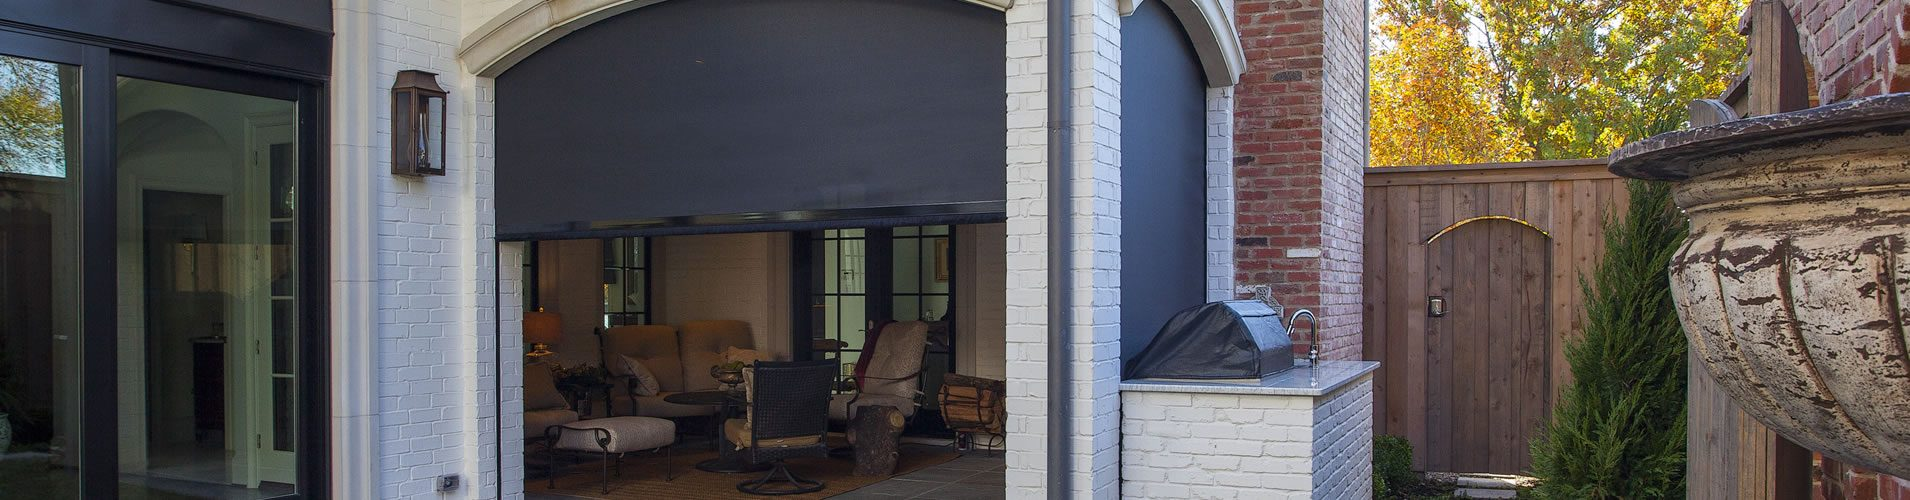 motorized retractable screens Houston TX